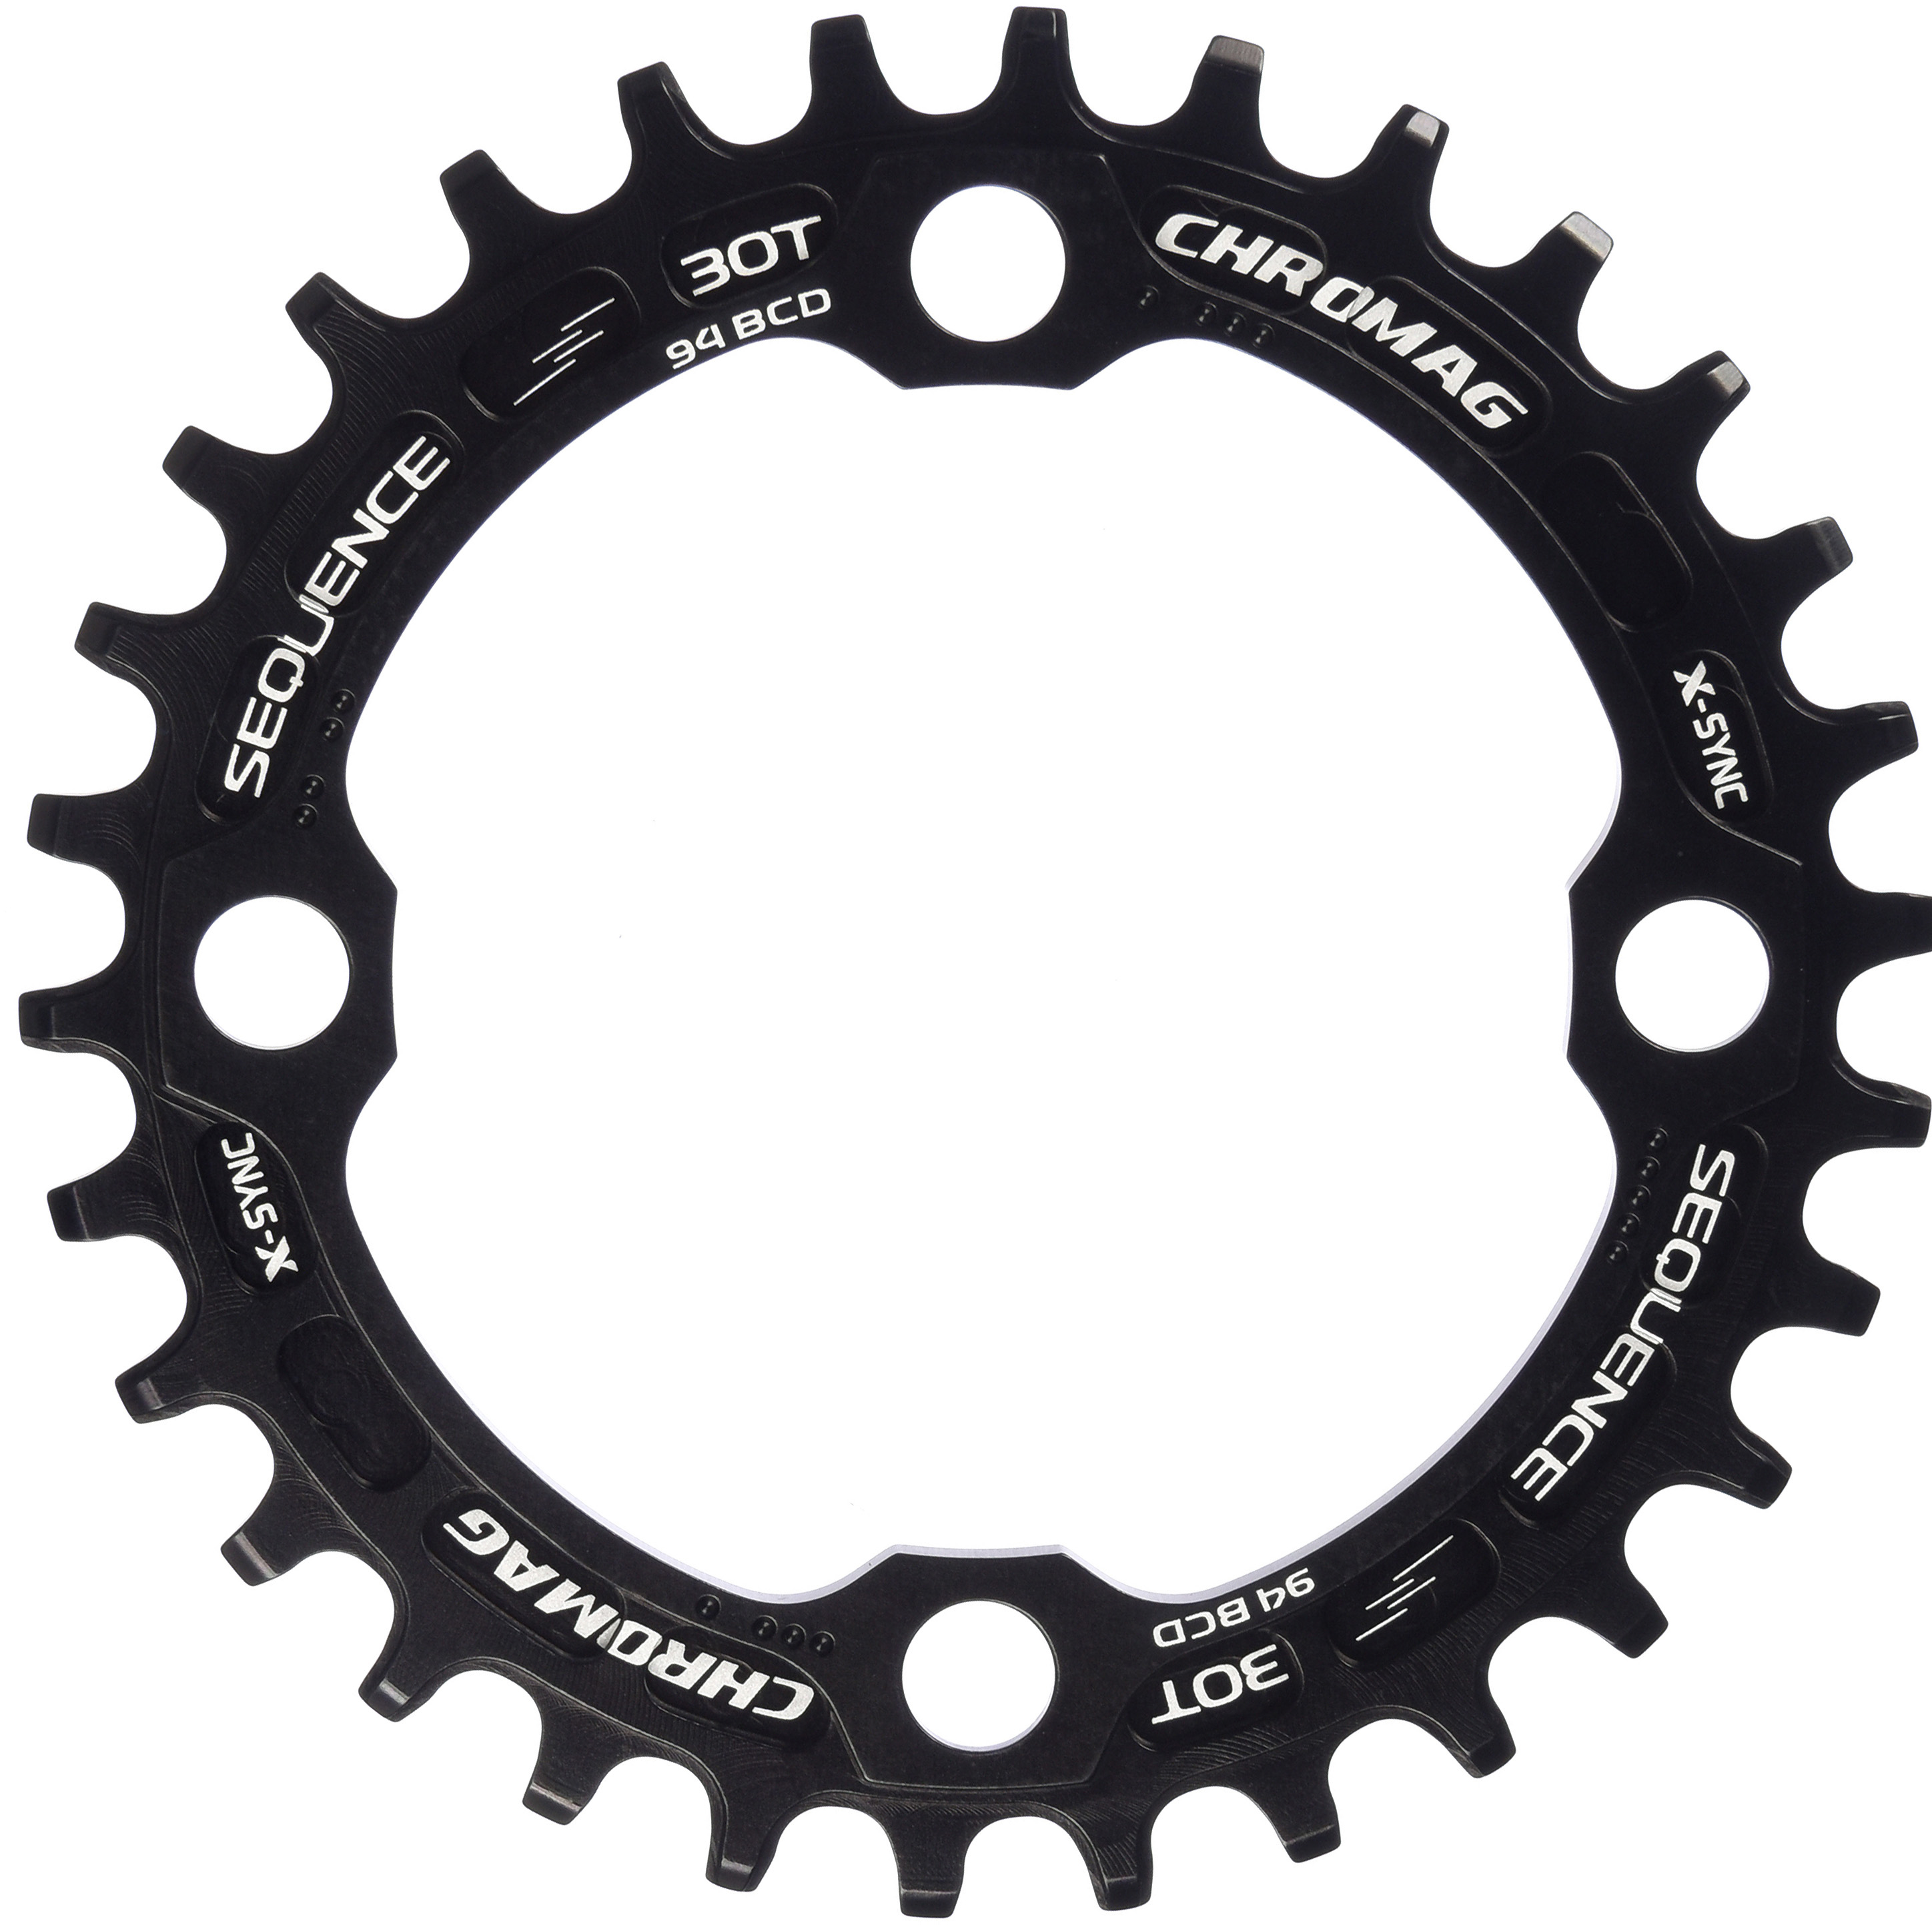 Chromag Sequence 94 BCD X-Sync Chainring   chainrings_component